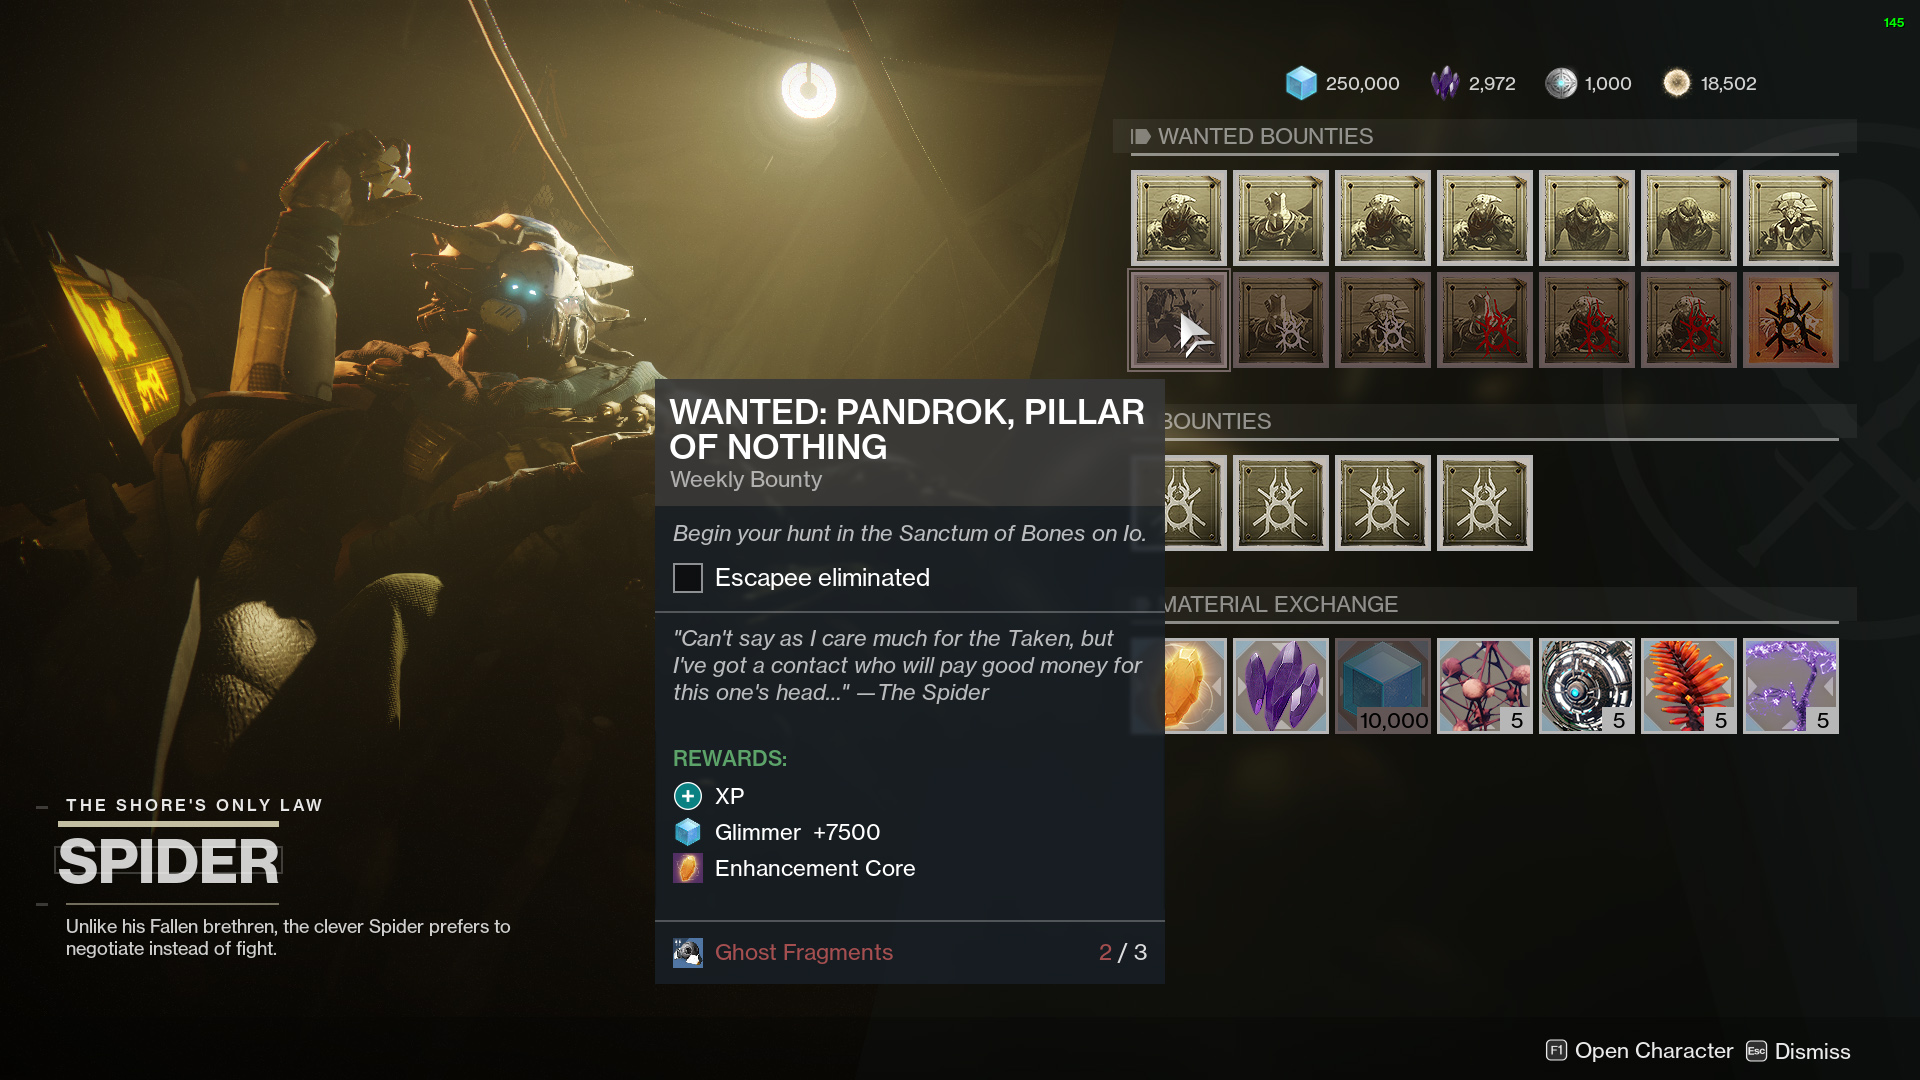 destiny 2 spider wanted pandrok pillar of nothing